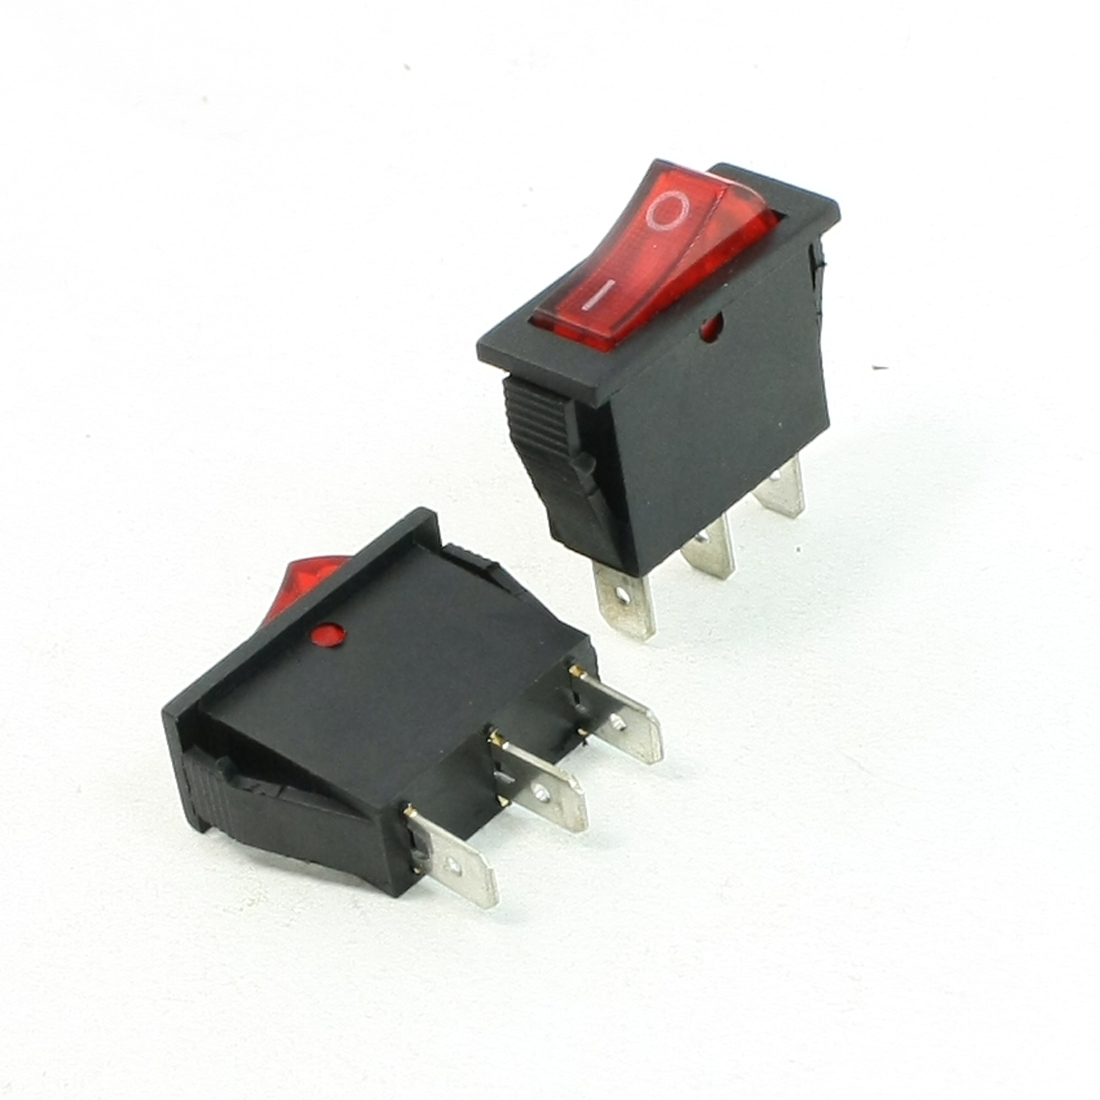 2 Pcs AC 15A 250V 125V 20A SPST On/Off Red Neon Light Rocker Switch